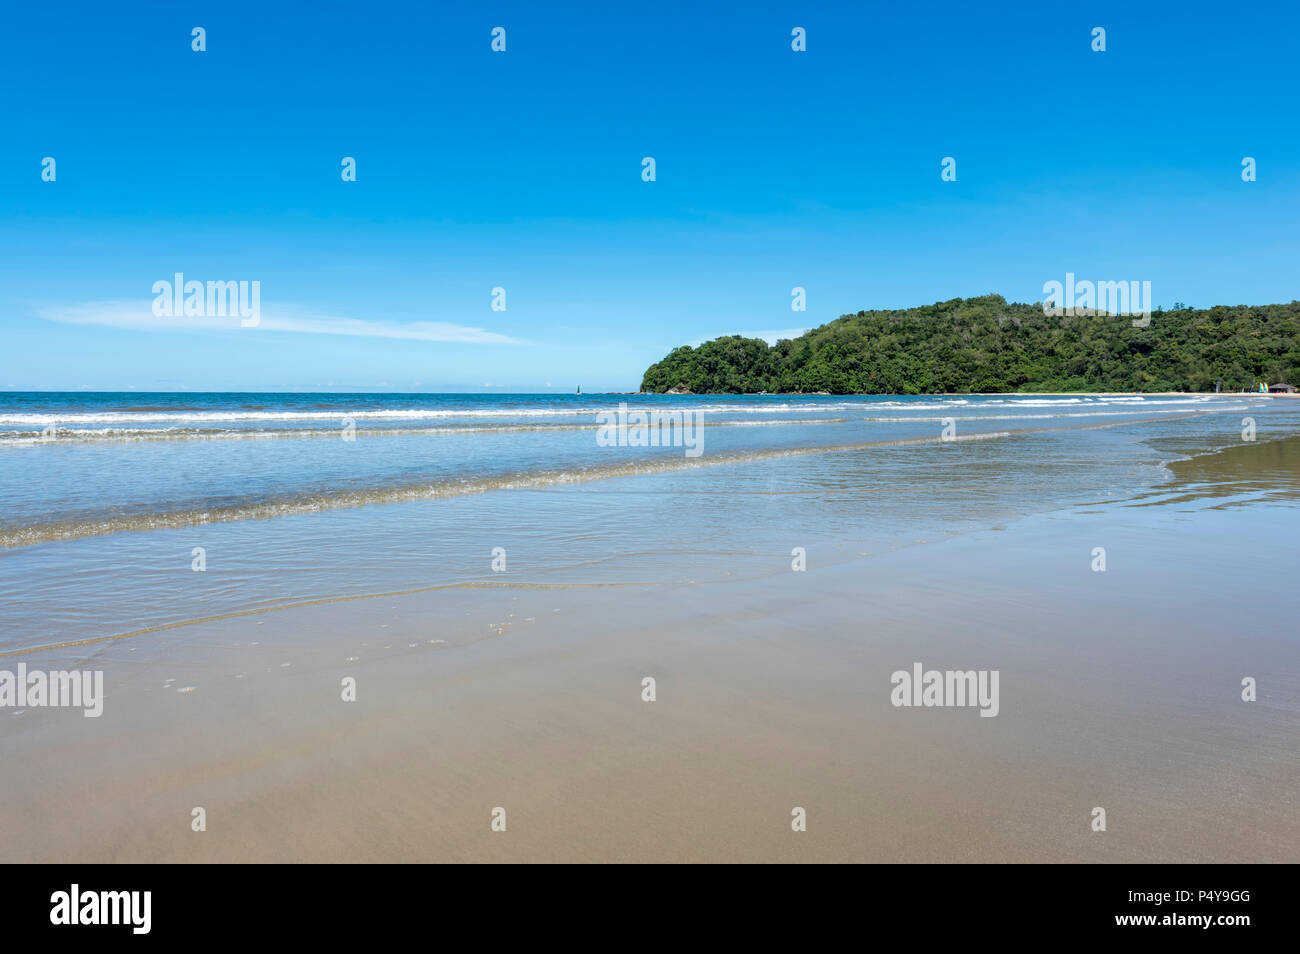 Waves from the South China Sea break on to the beach in Kota Kinabalu, Borneo, Malaysia Stock Photo